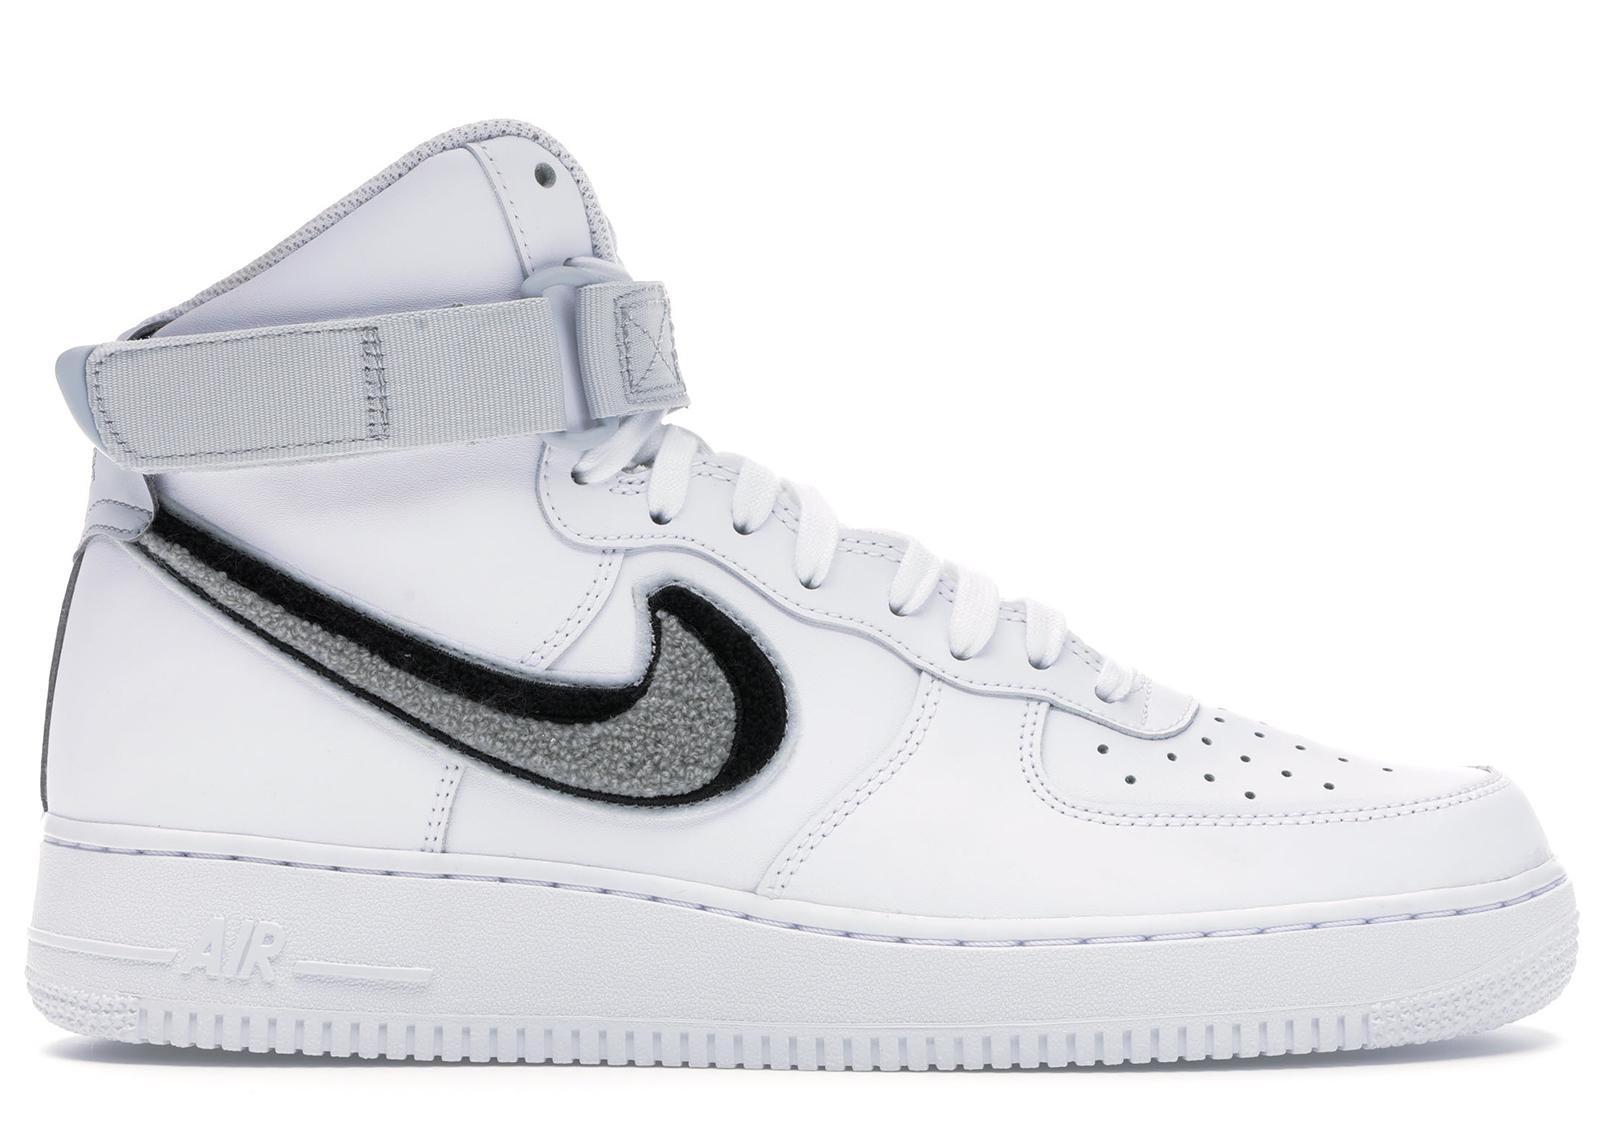 Nike Air Force 1 High 3d Chenille White Grey Black In Gray For Men